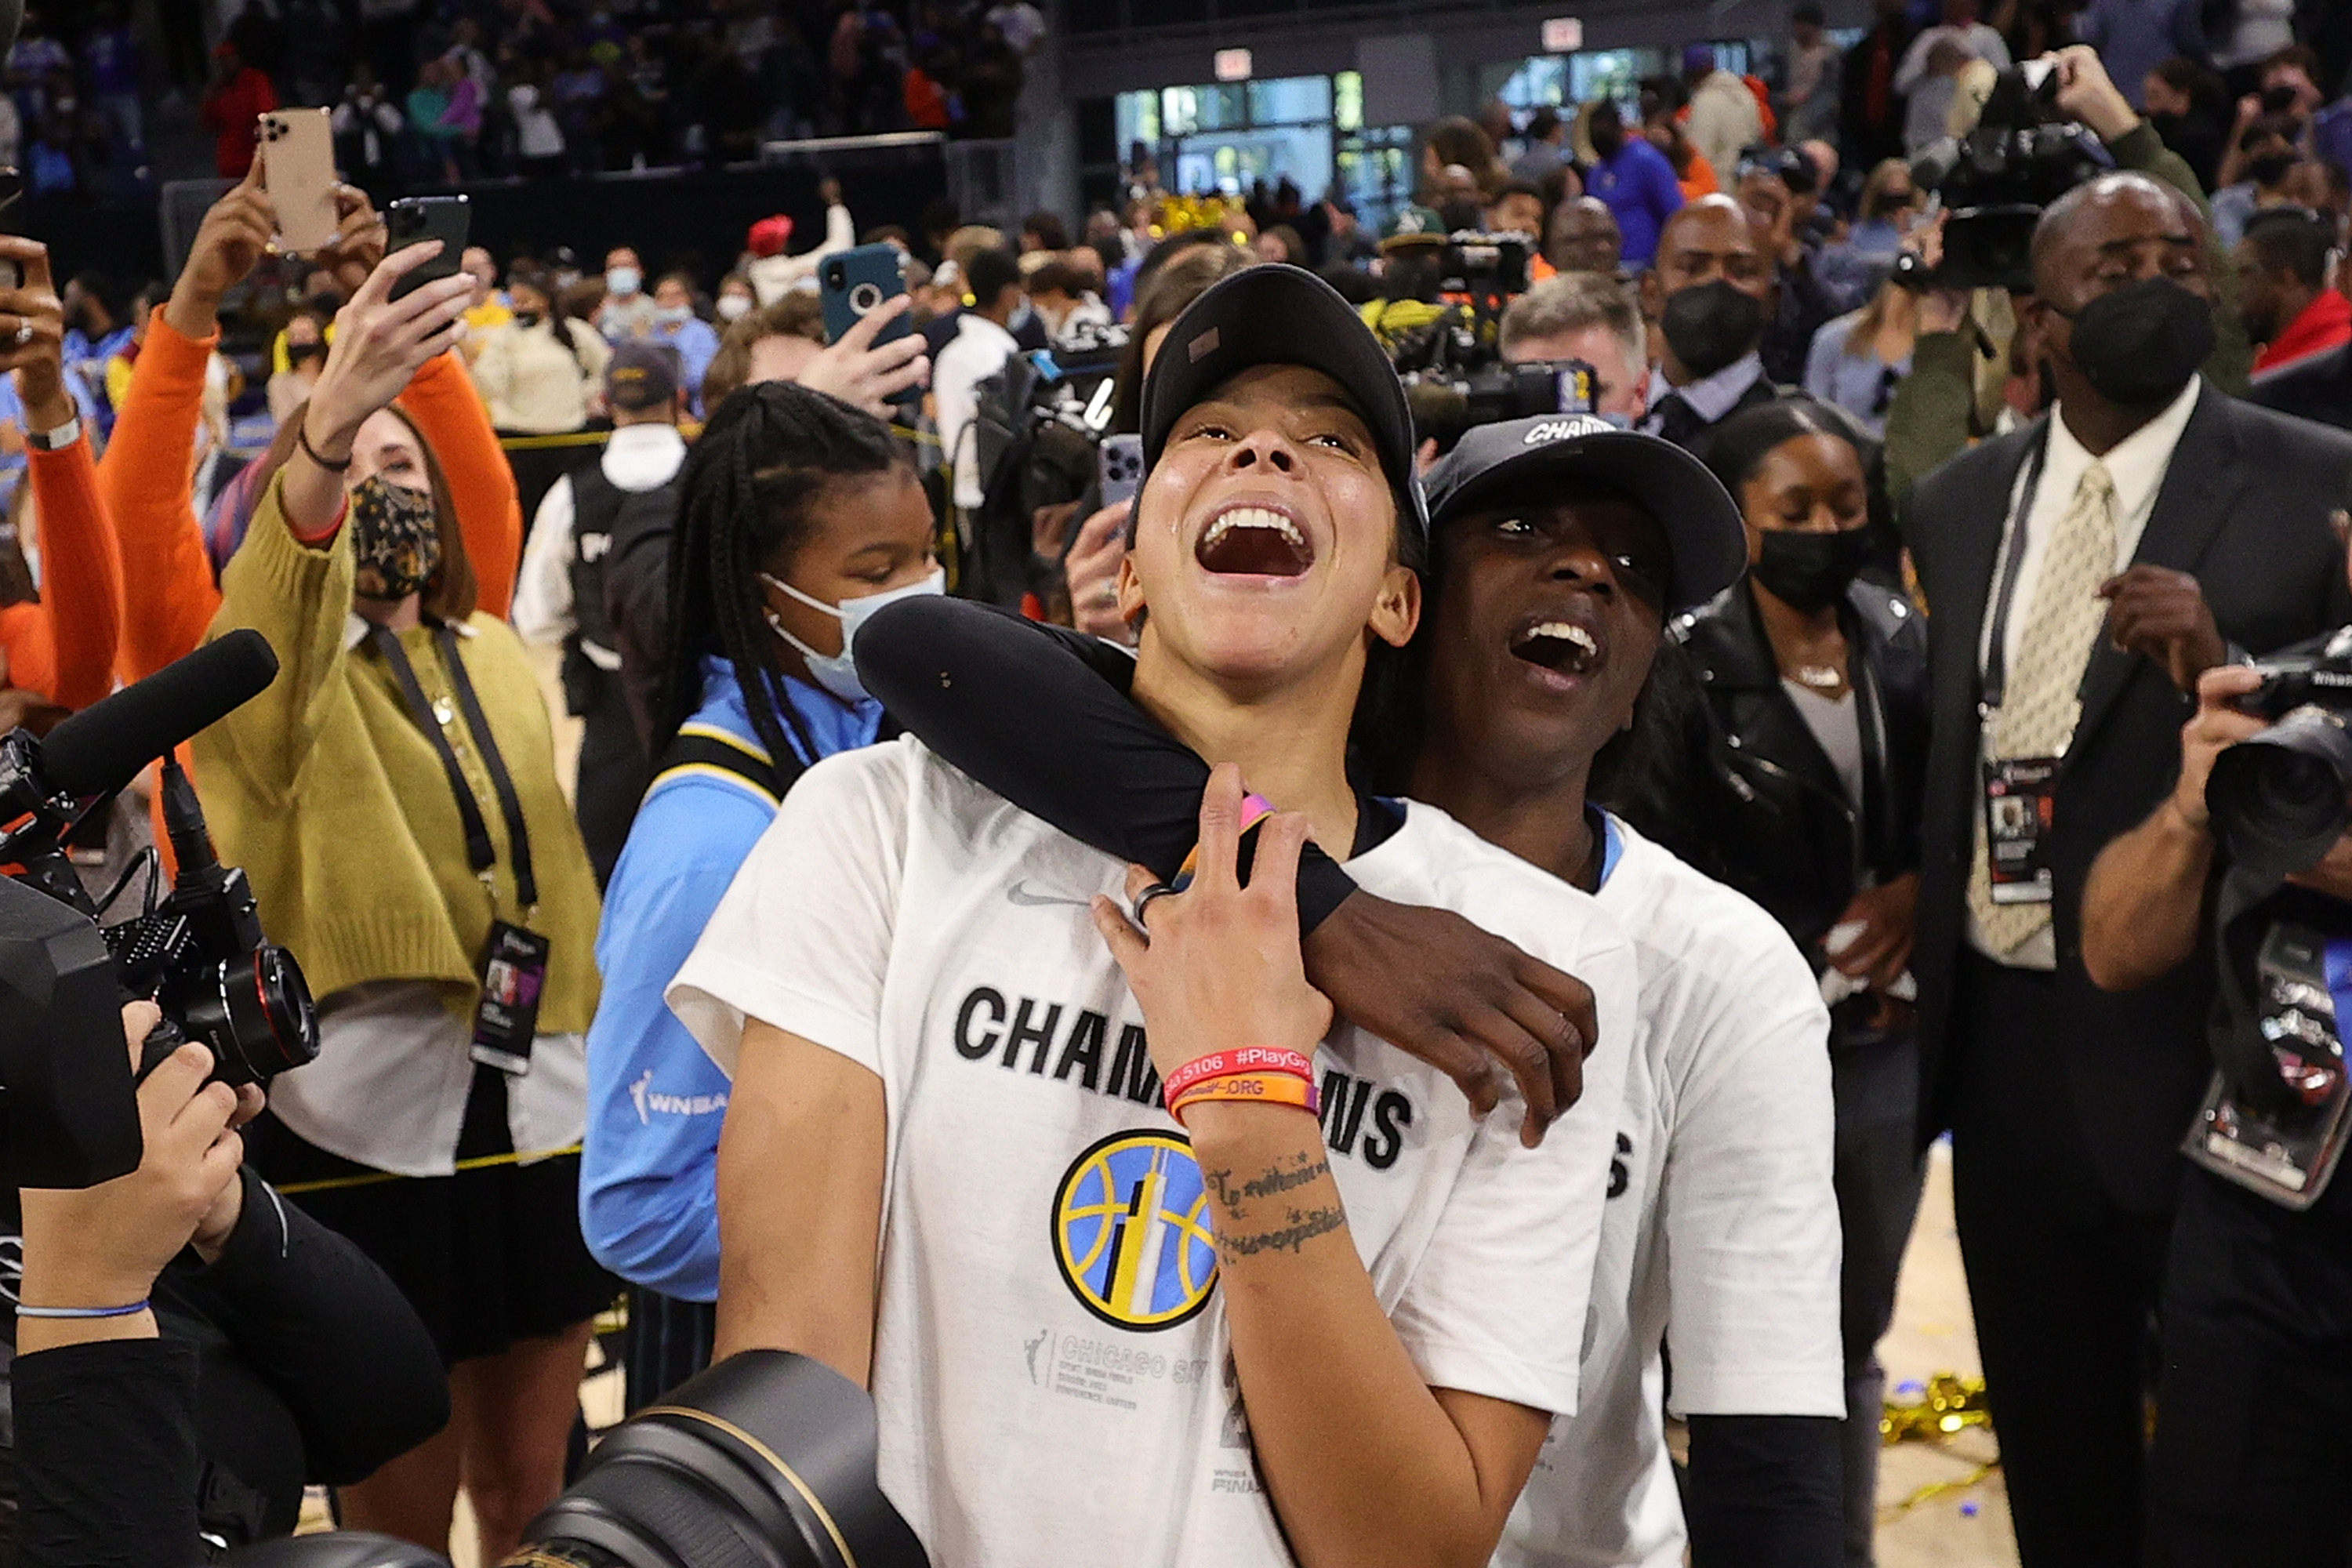 The Sky's Candace Parker and Kahleah Copper celebrate after winning the WNBA championship at Wintrust Arena.